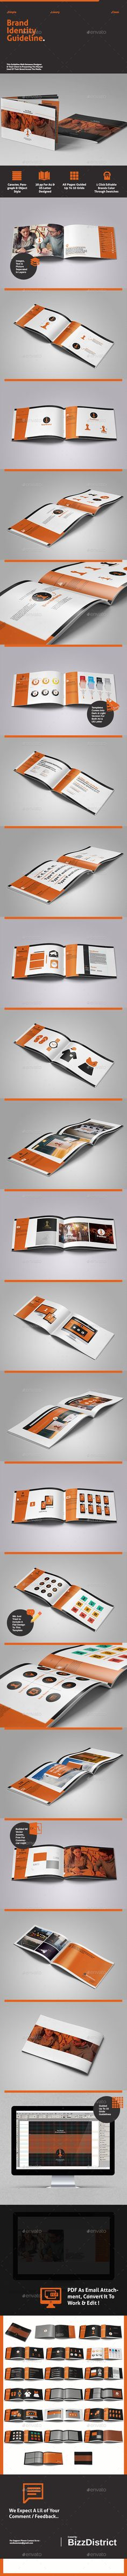 Brand Identity Guidelines - Informational Brochures - Designer Kit, please digest & check..